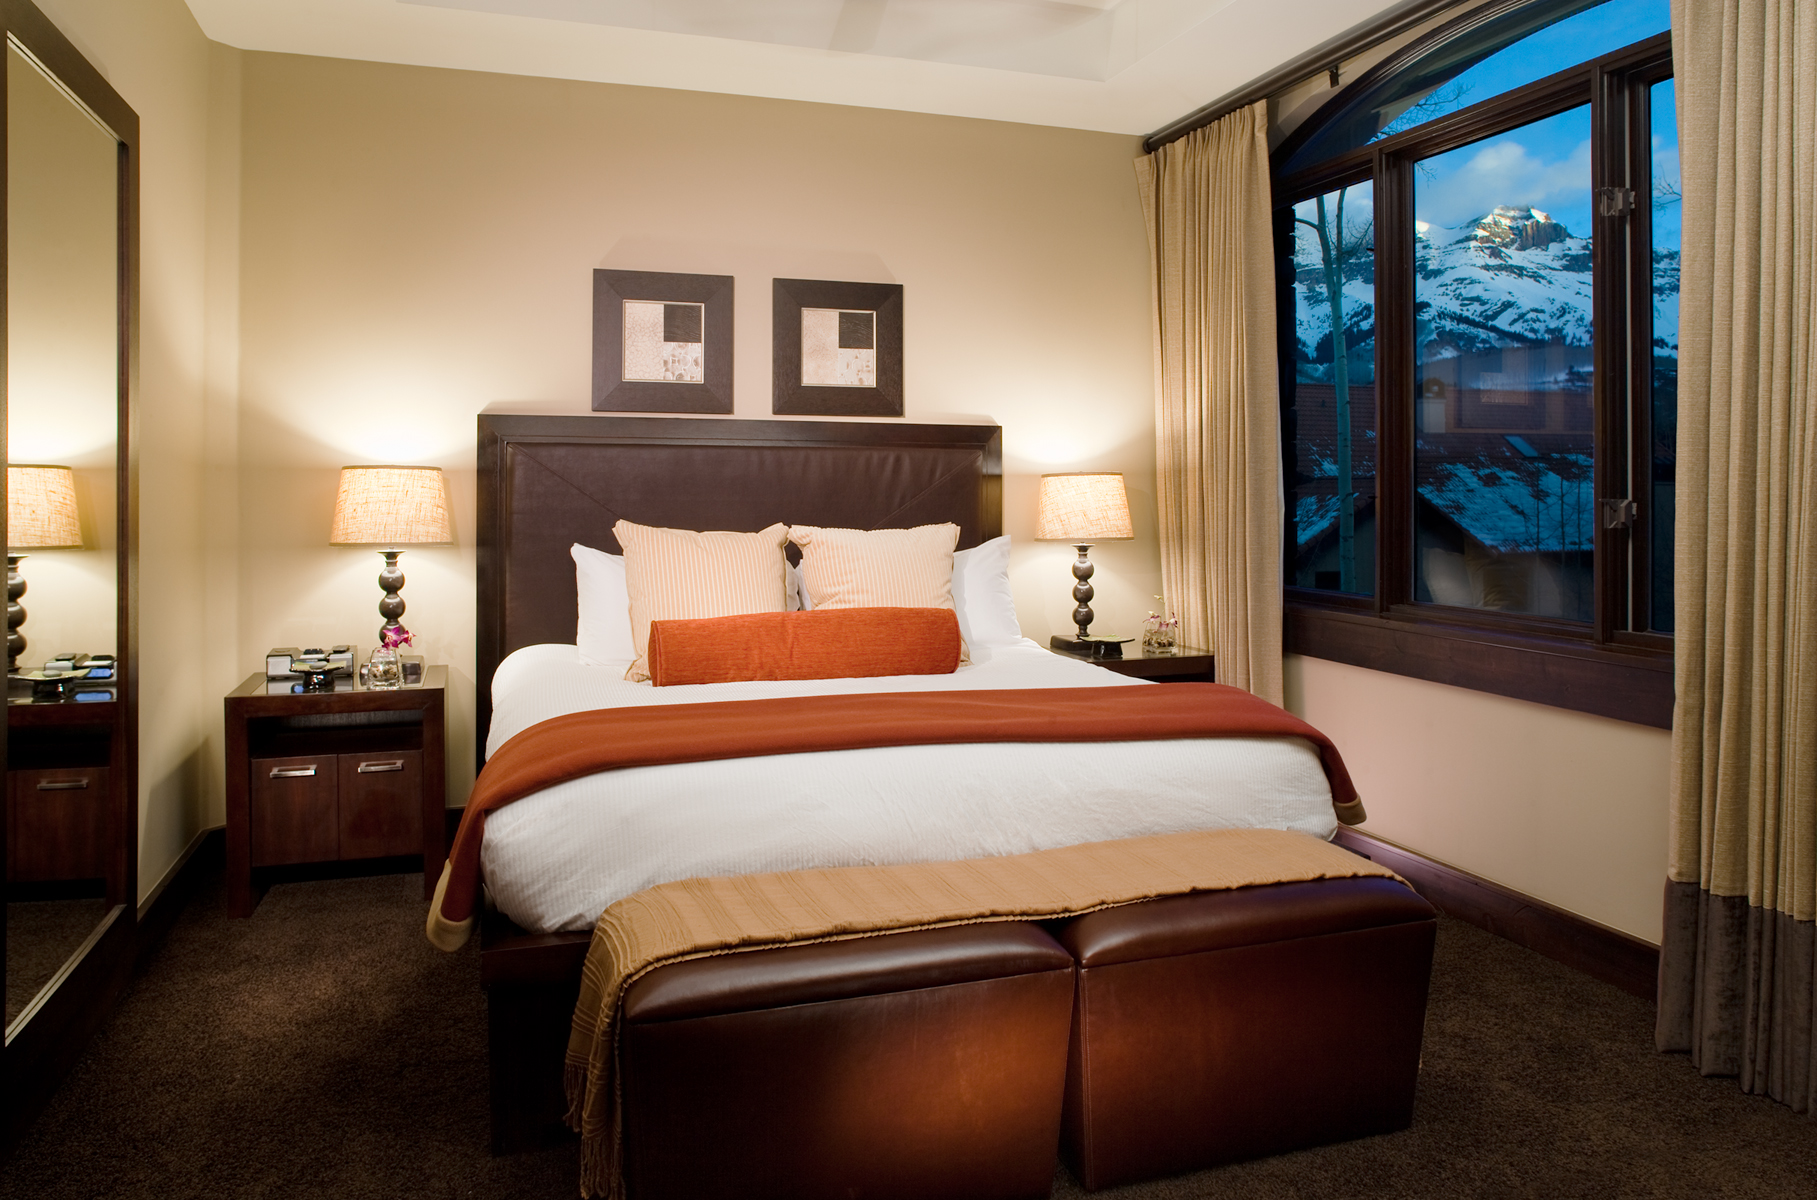 Interior bedroom of Telluride Luxury hotel